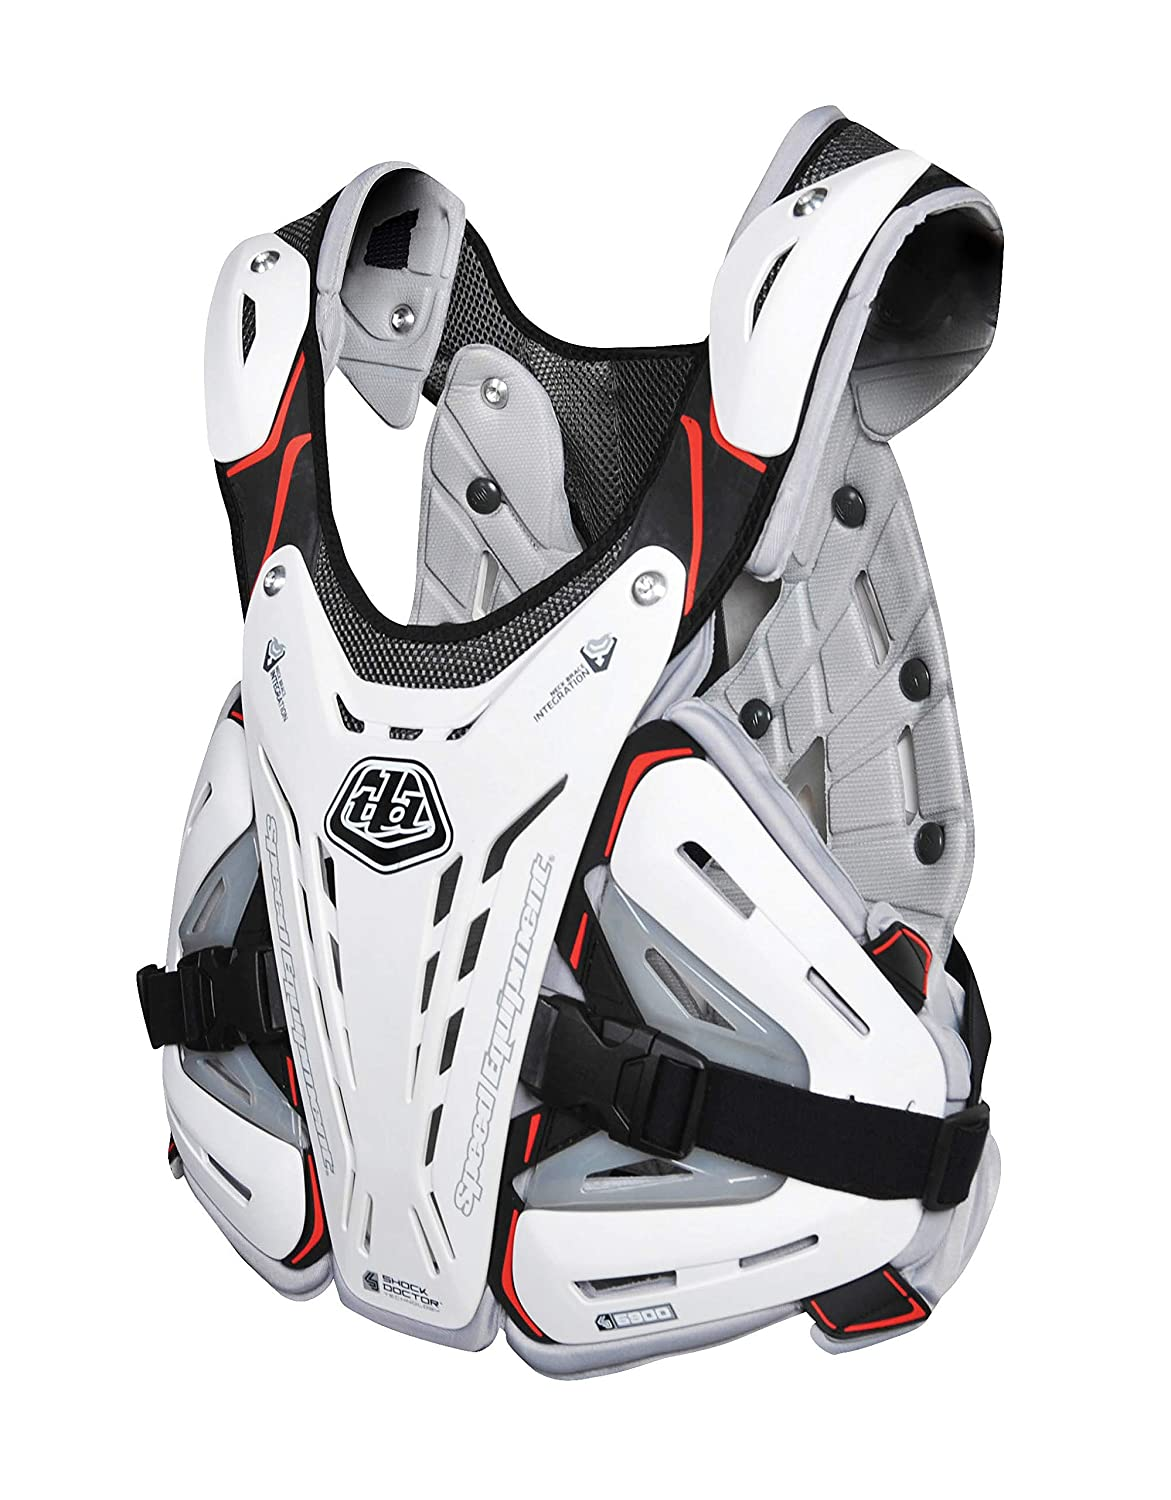 Troy Lee Designs CP 5900 Adult Roost Guard MX Motorcycle Body Armor Medium White